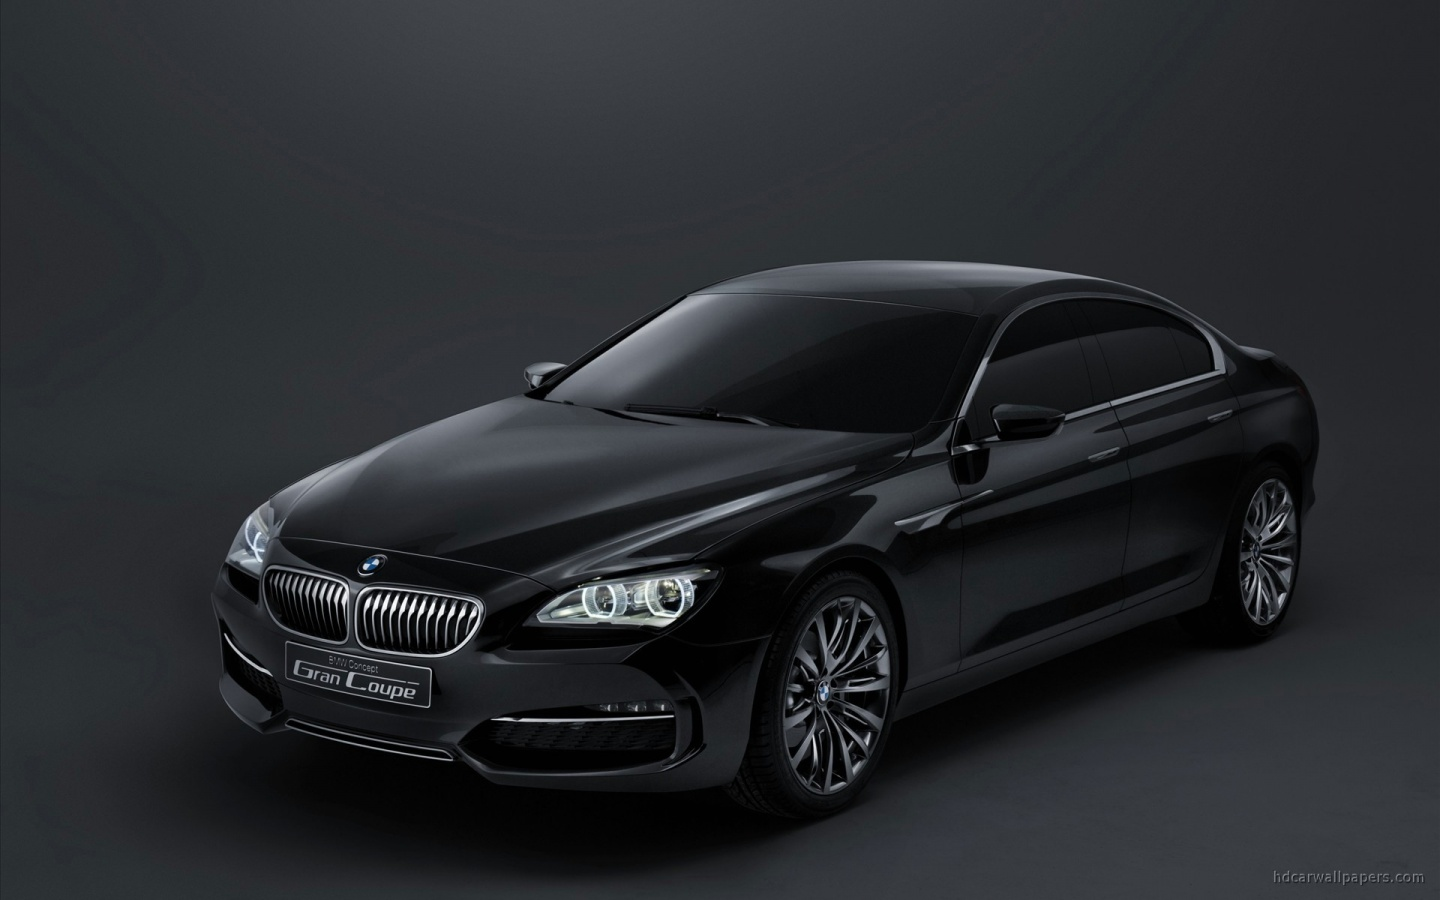 2019 BMW Gran Coupe Concept photo - 1